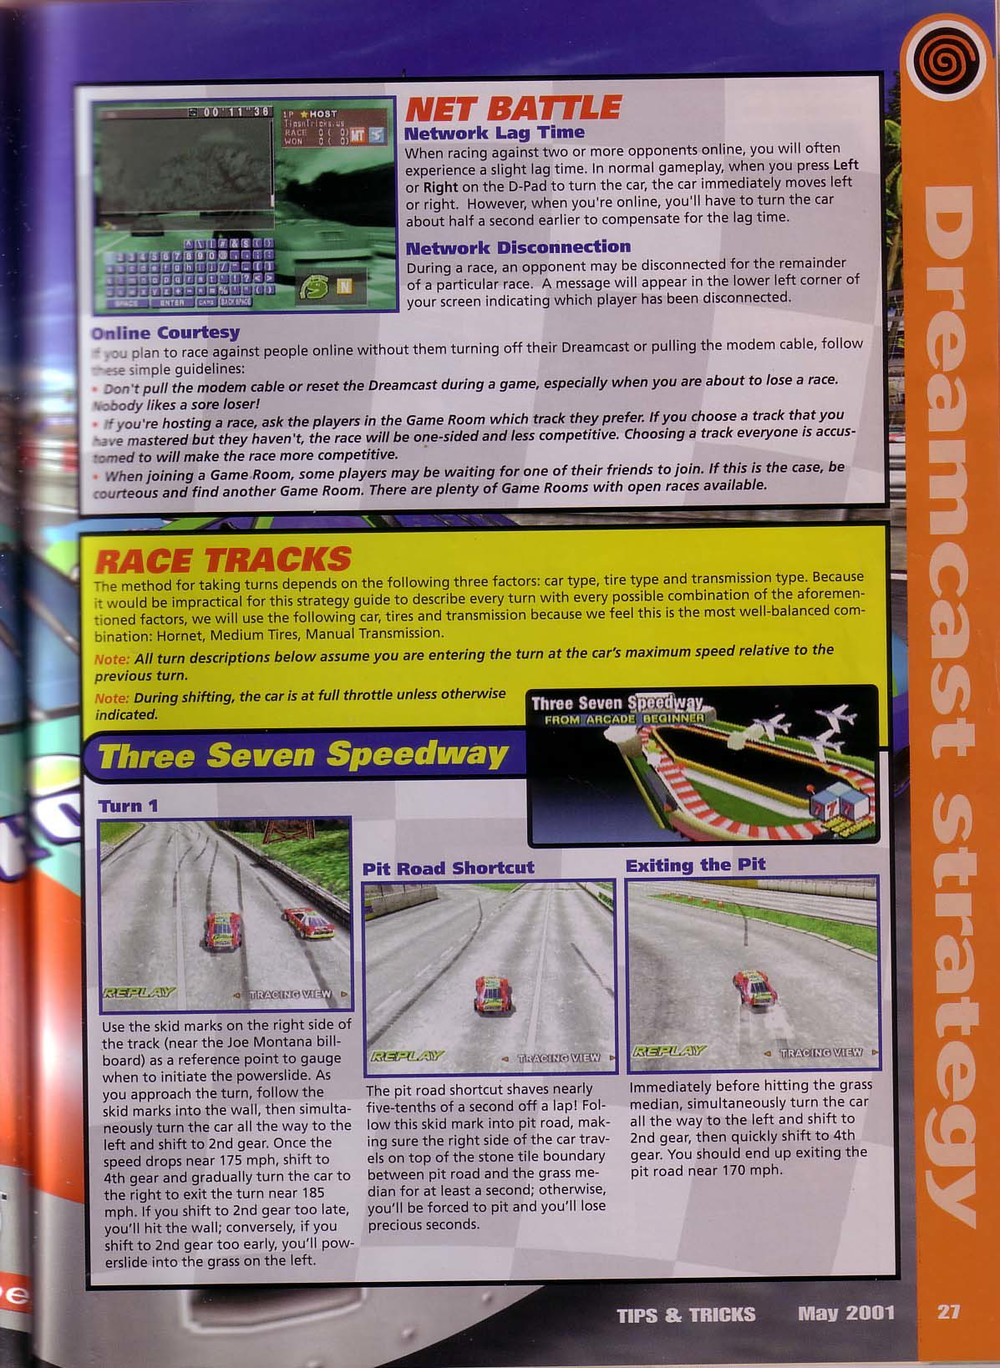 TipsandTricks_May_2001_Daytona_USA_pg2_Strategy.jpg